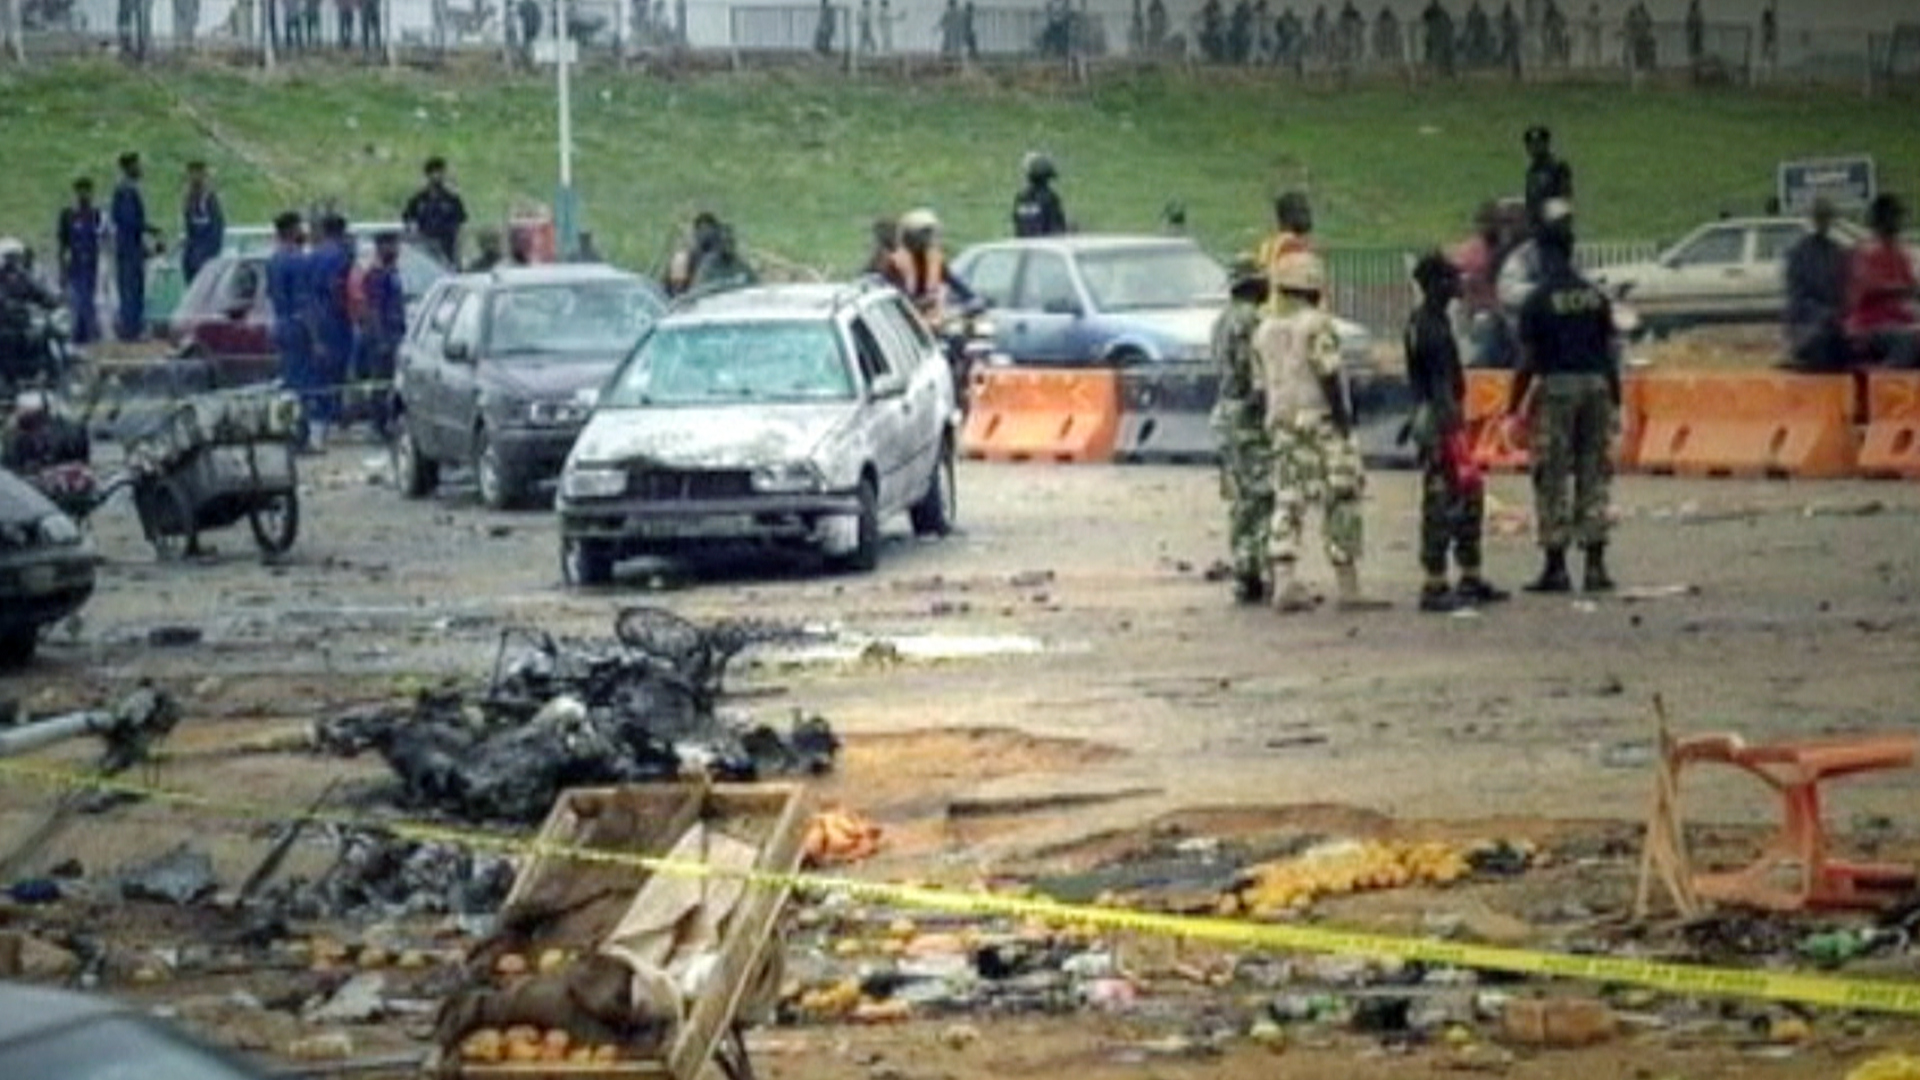 terrorism in nigeria A suicide bomber drove through the gates of the un headquarters in abuja, nigeria, just after 11 am on august 26 the car, strapped with a 100-pound bomb, accelerated up the long driveway and crashed into two security barriers near the building's reception area the explosion tore apart the.